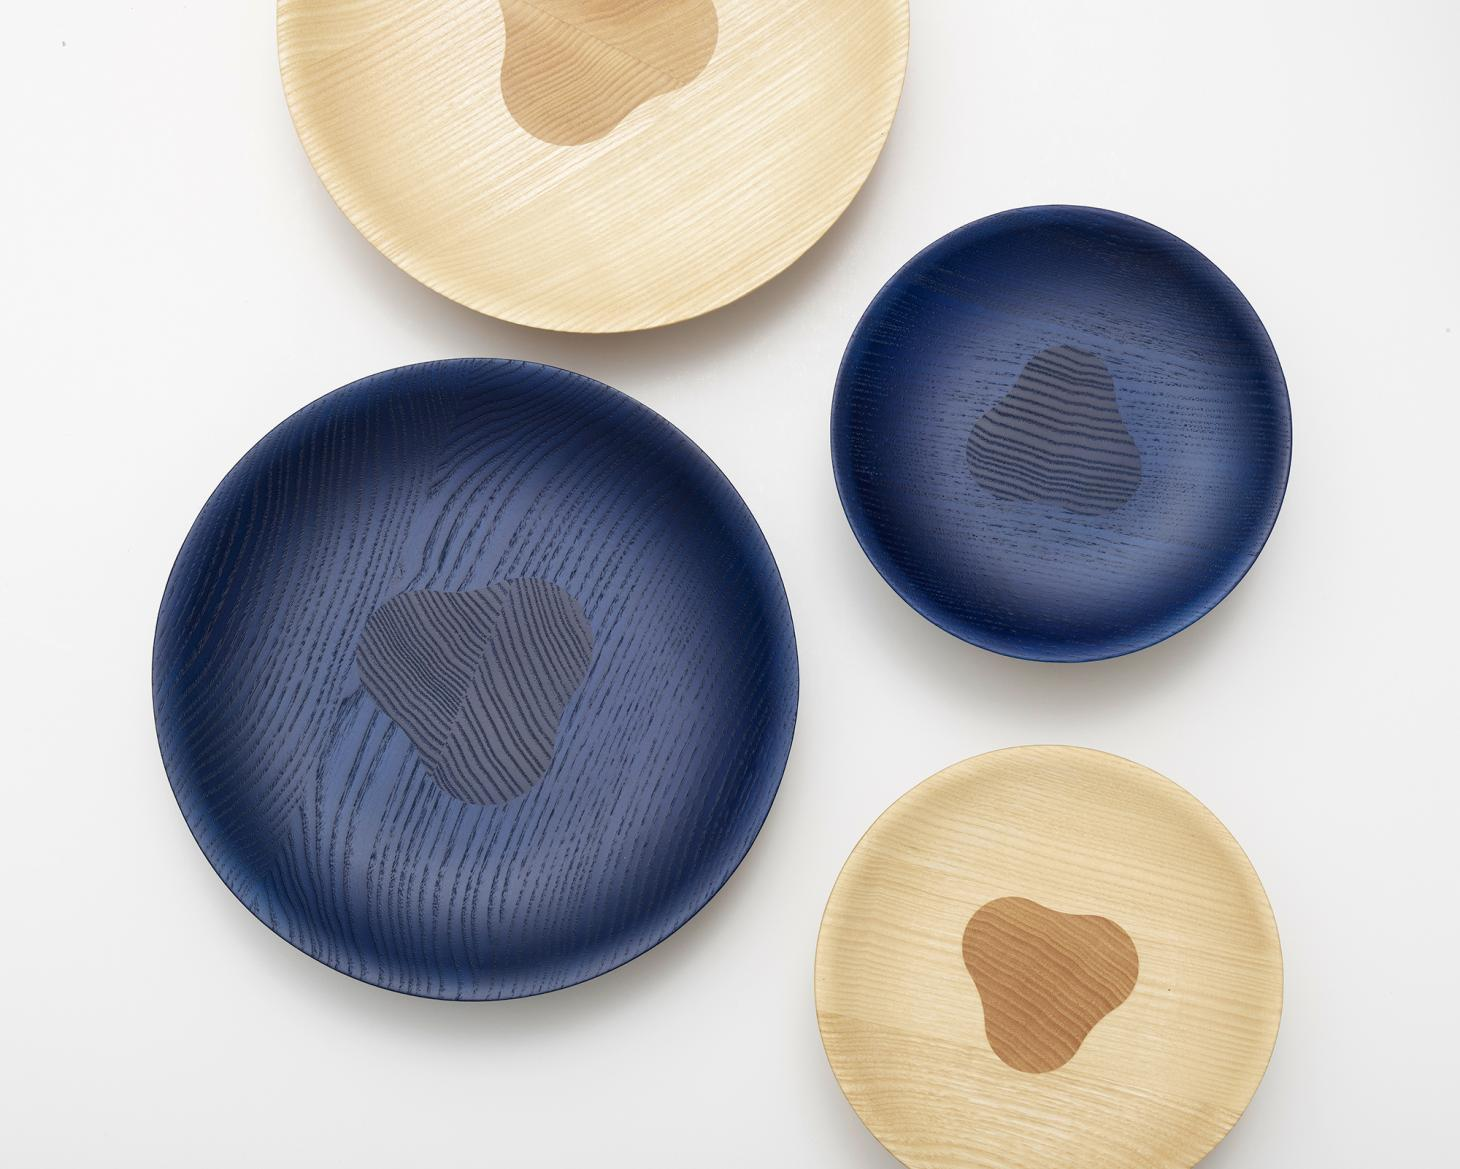 Wooden bowls shot from above in natural and blue stained wood